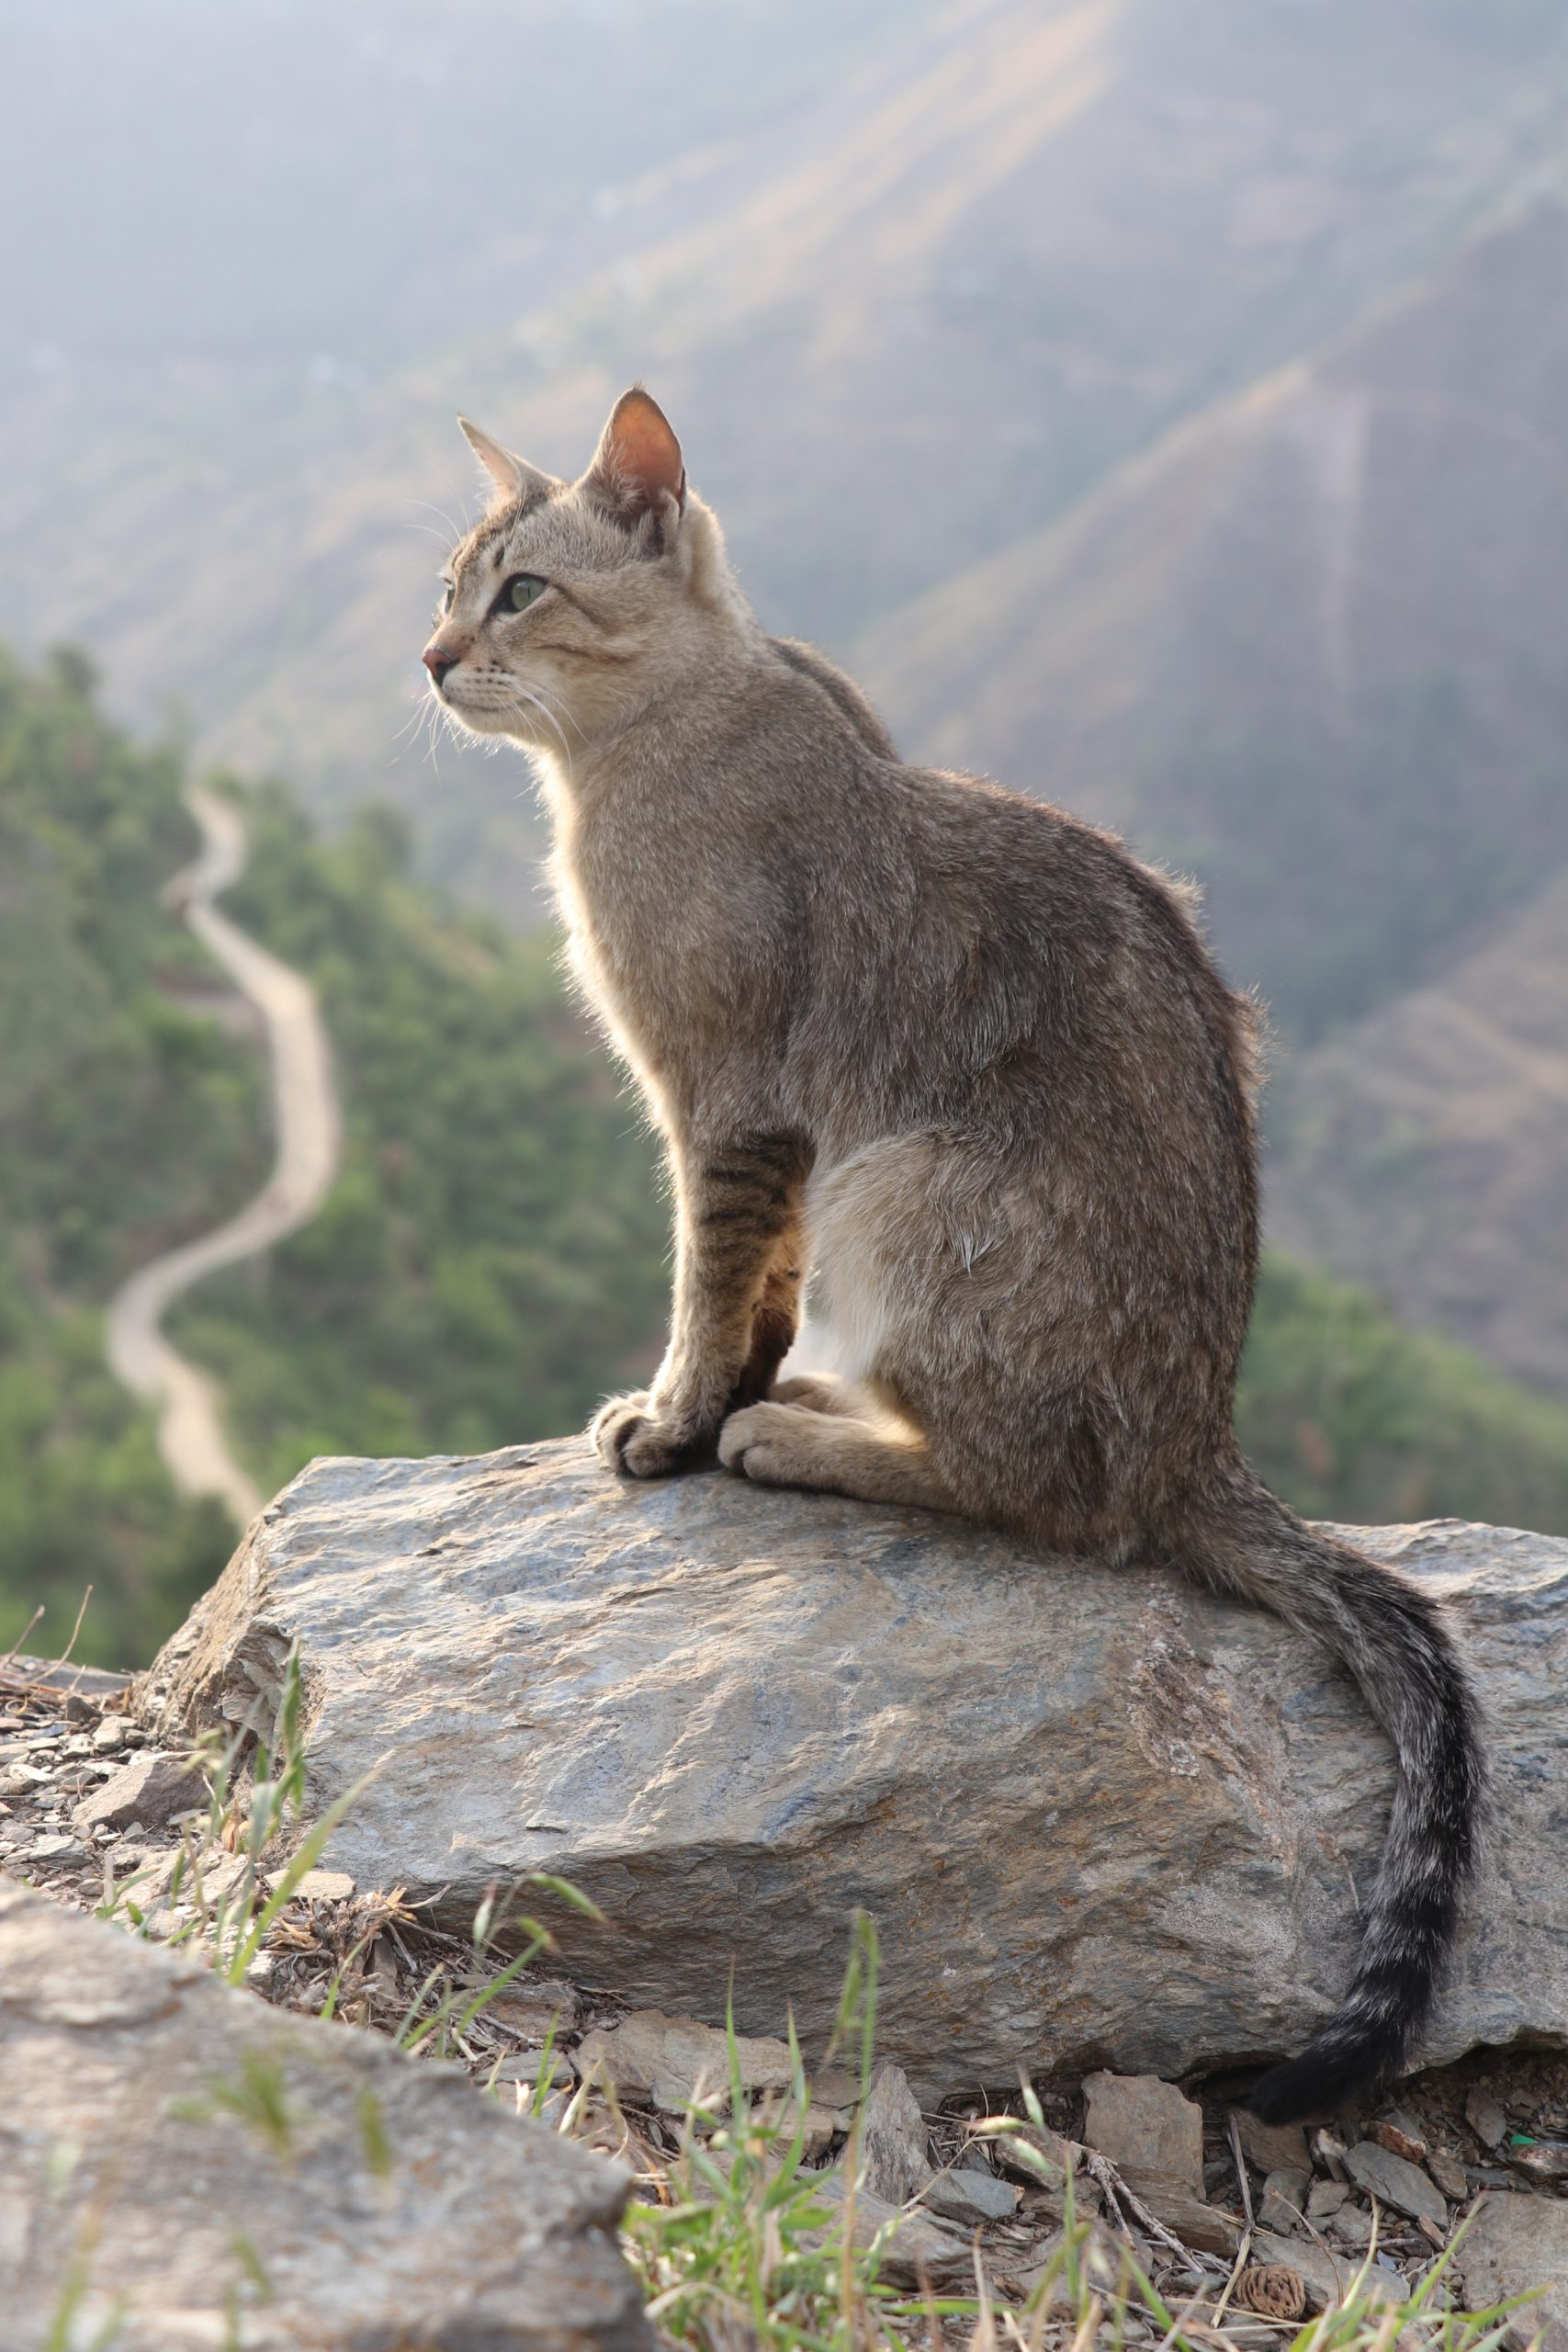 A cat sitting on a stone